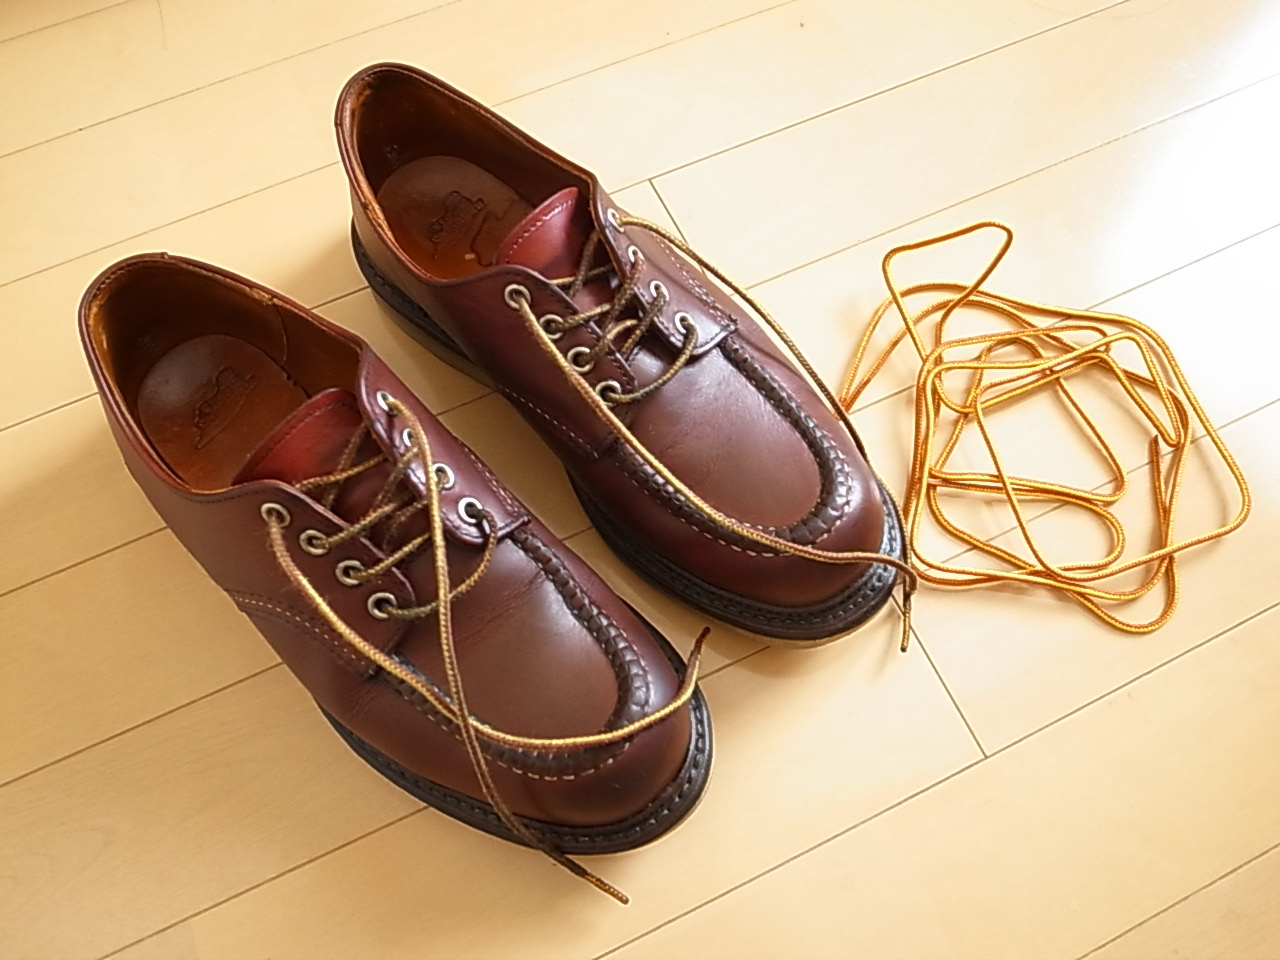 Redwing boot laces 5